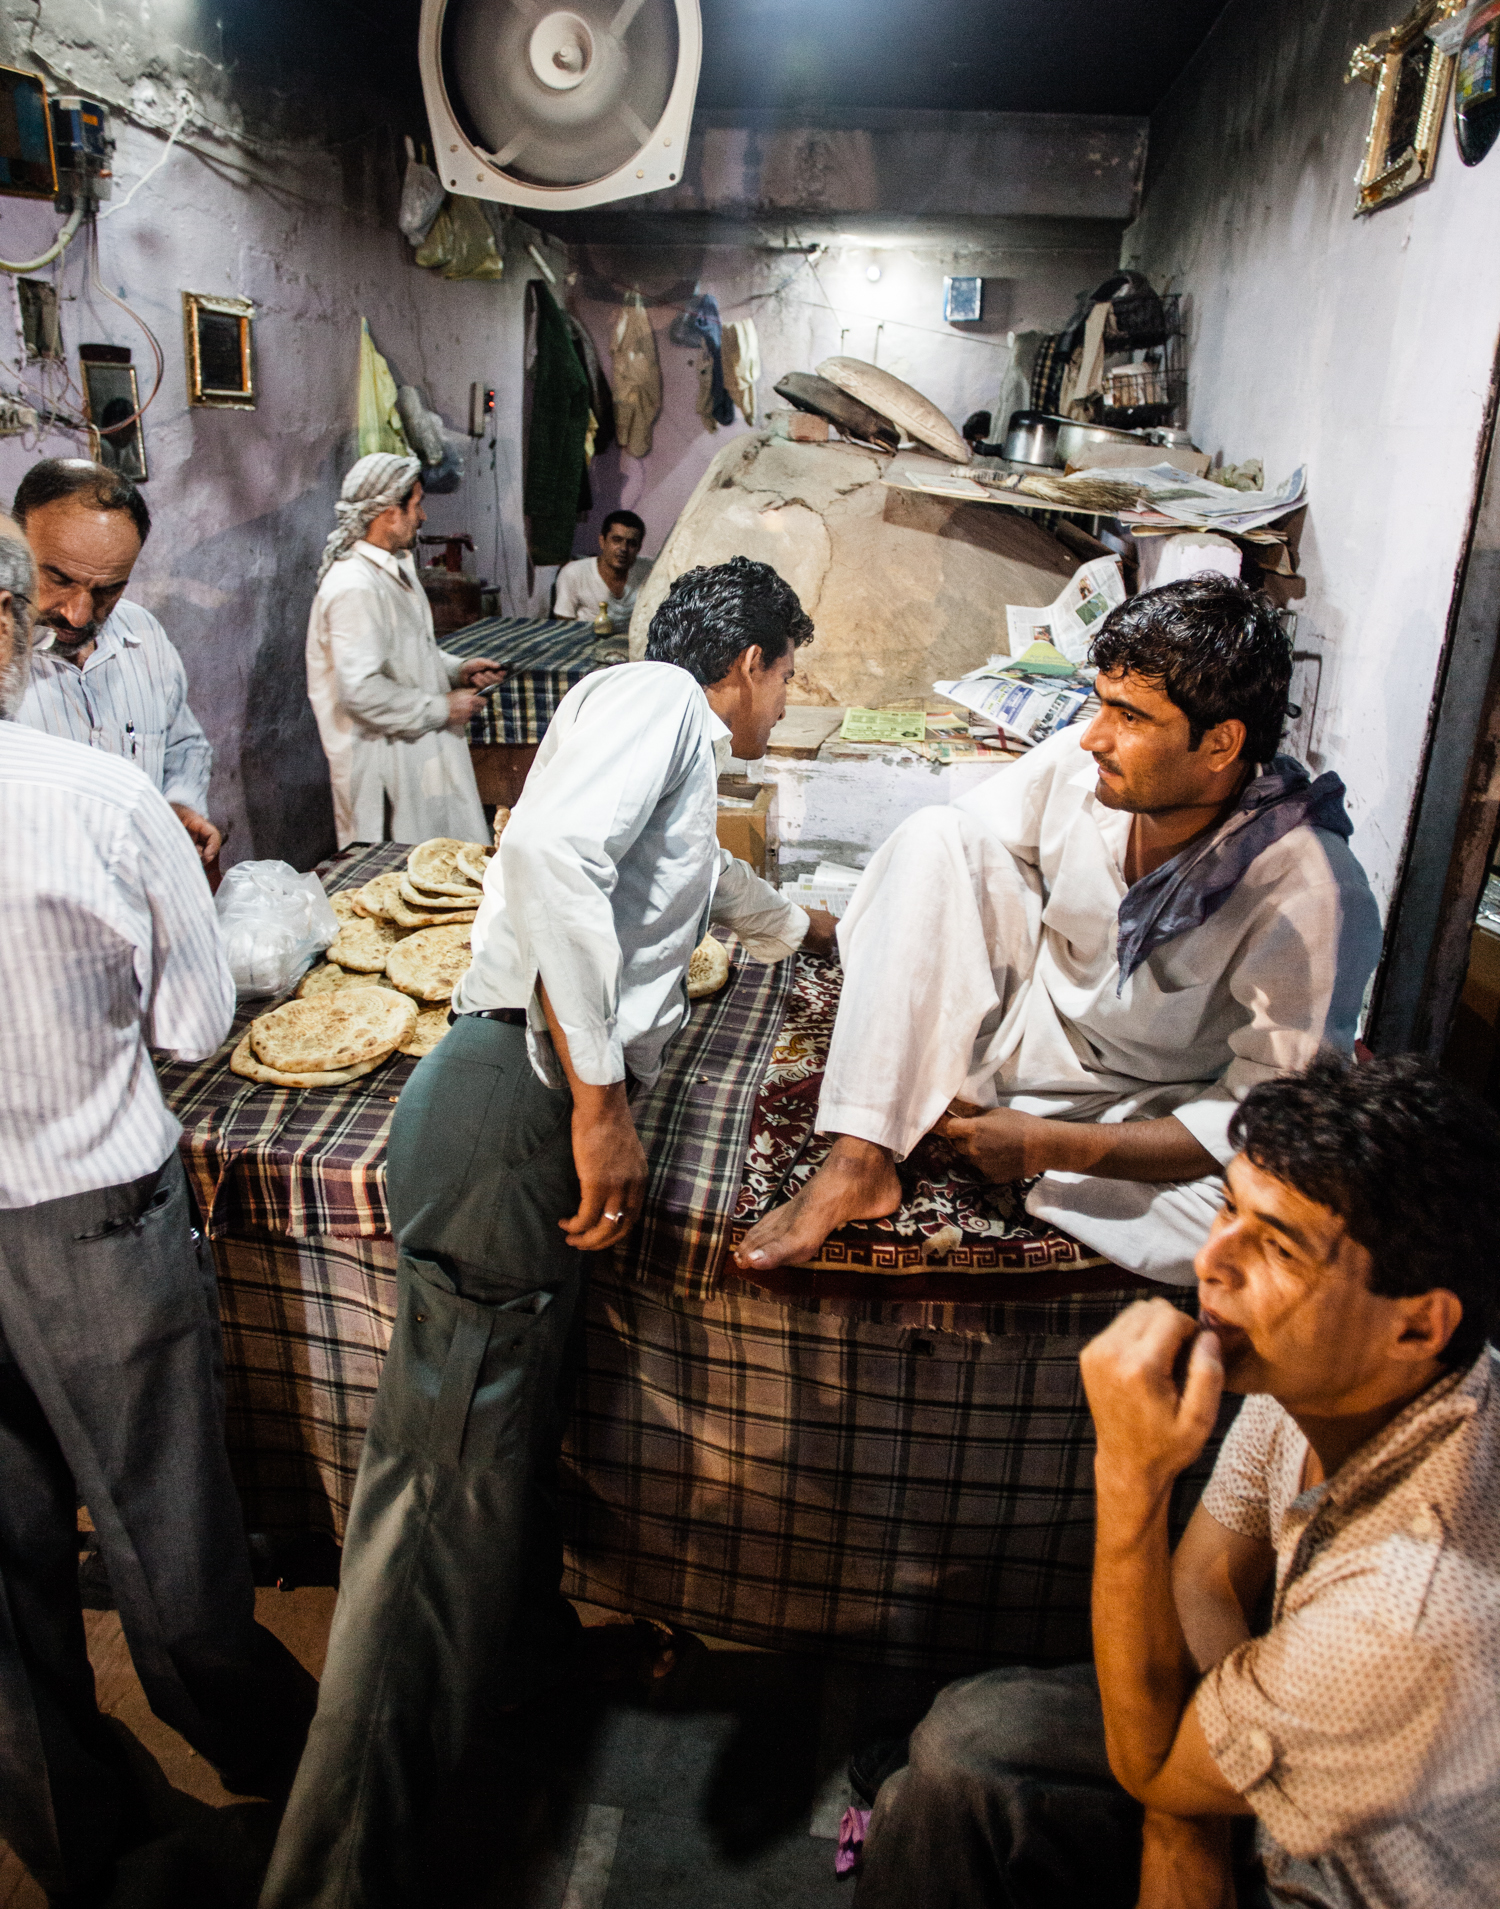 Jangpura Bhogal, New Delhi - Bhogal's Afghan bakery is a popular spot at night not only to buy bread but many come to hang out.  Mint, a business daily newspaper